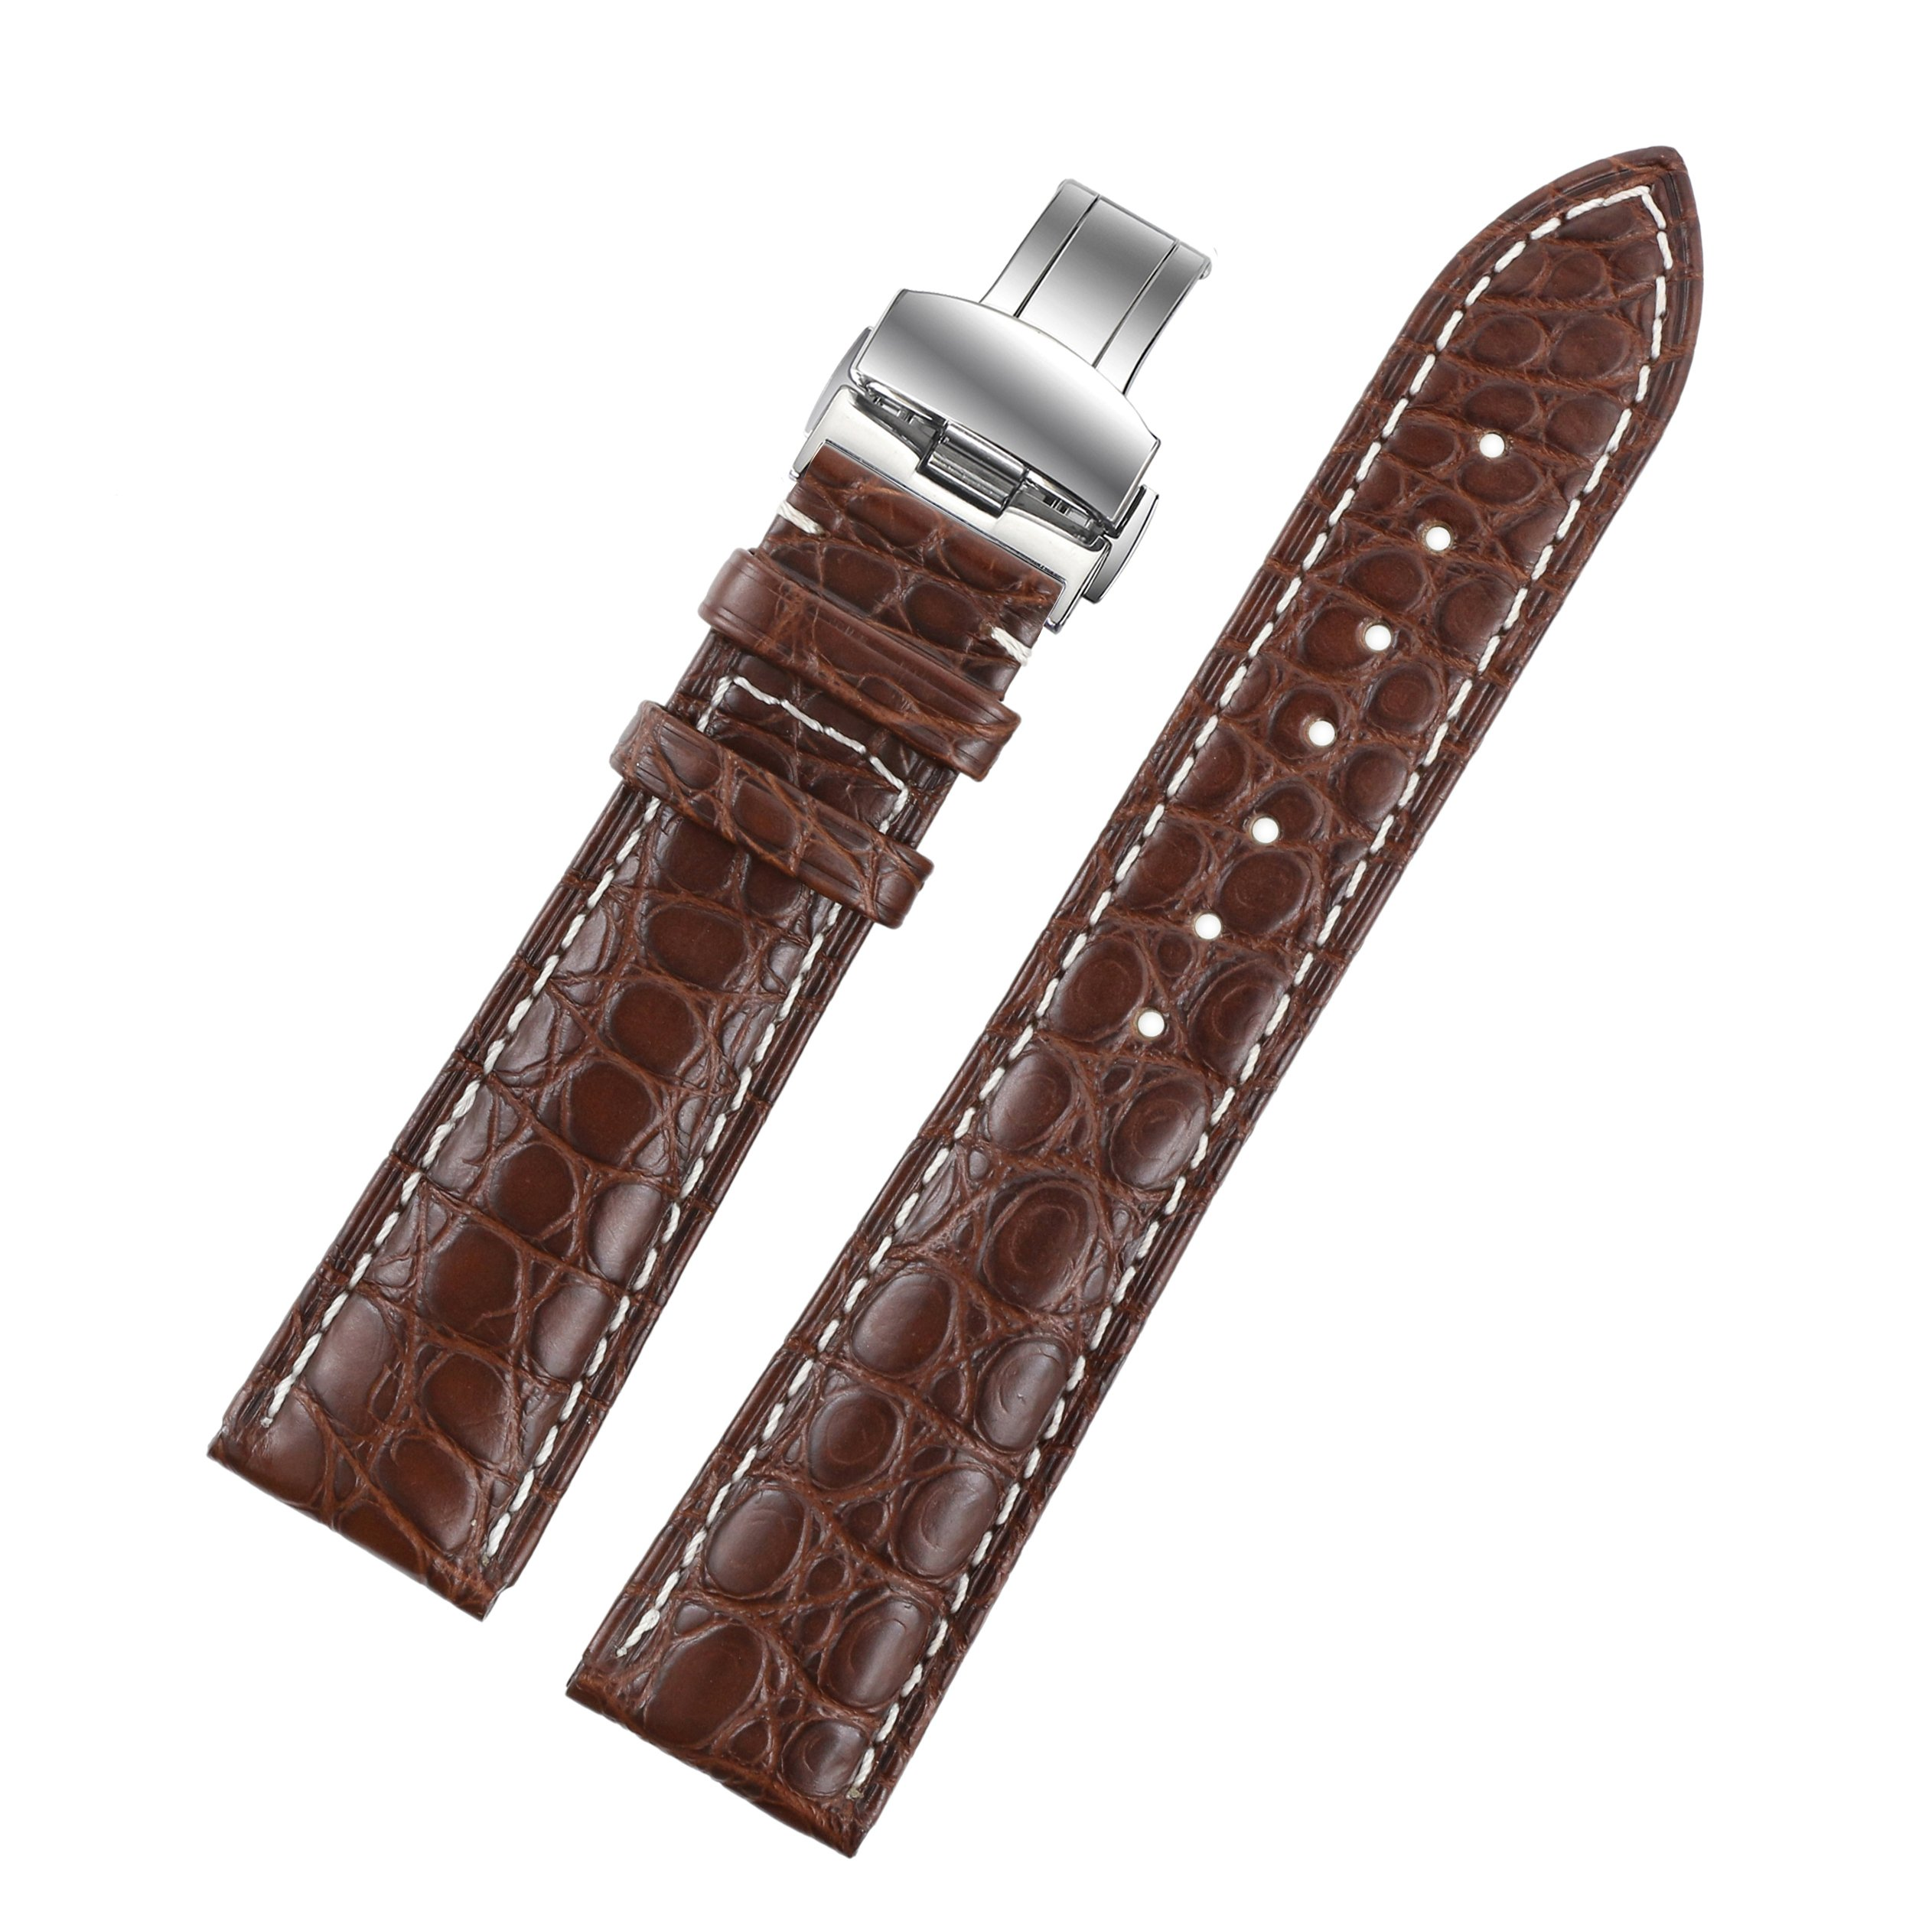 18mm Brown Watch Straps/Bands Replacement Luxury Alligator Skin Leather Handmade with White Stitching